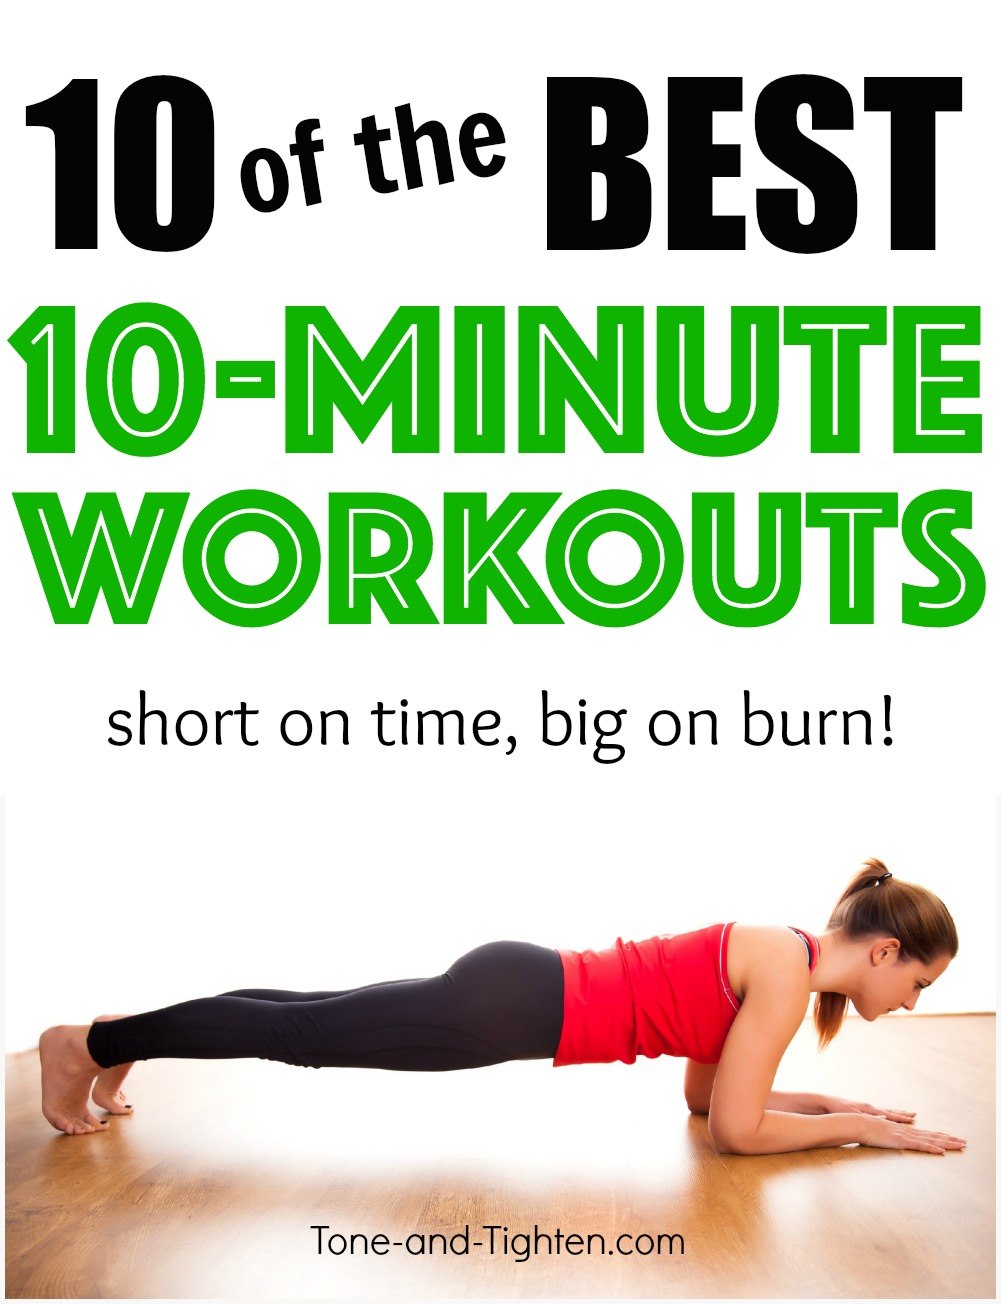 Ten of the Best 10-Minute Workouts Tone and Tighten